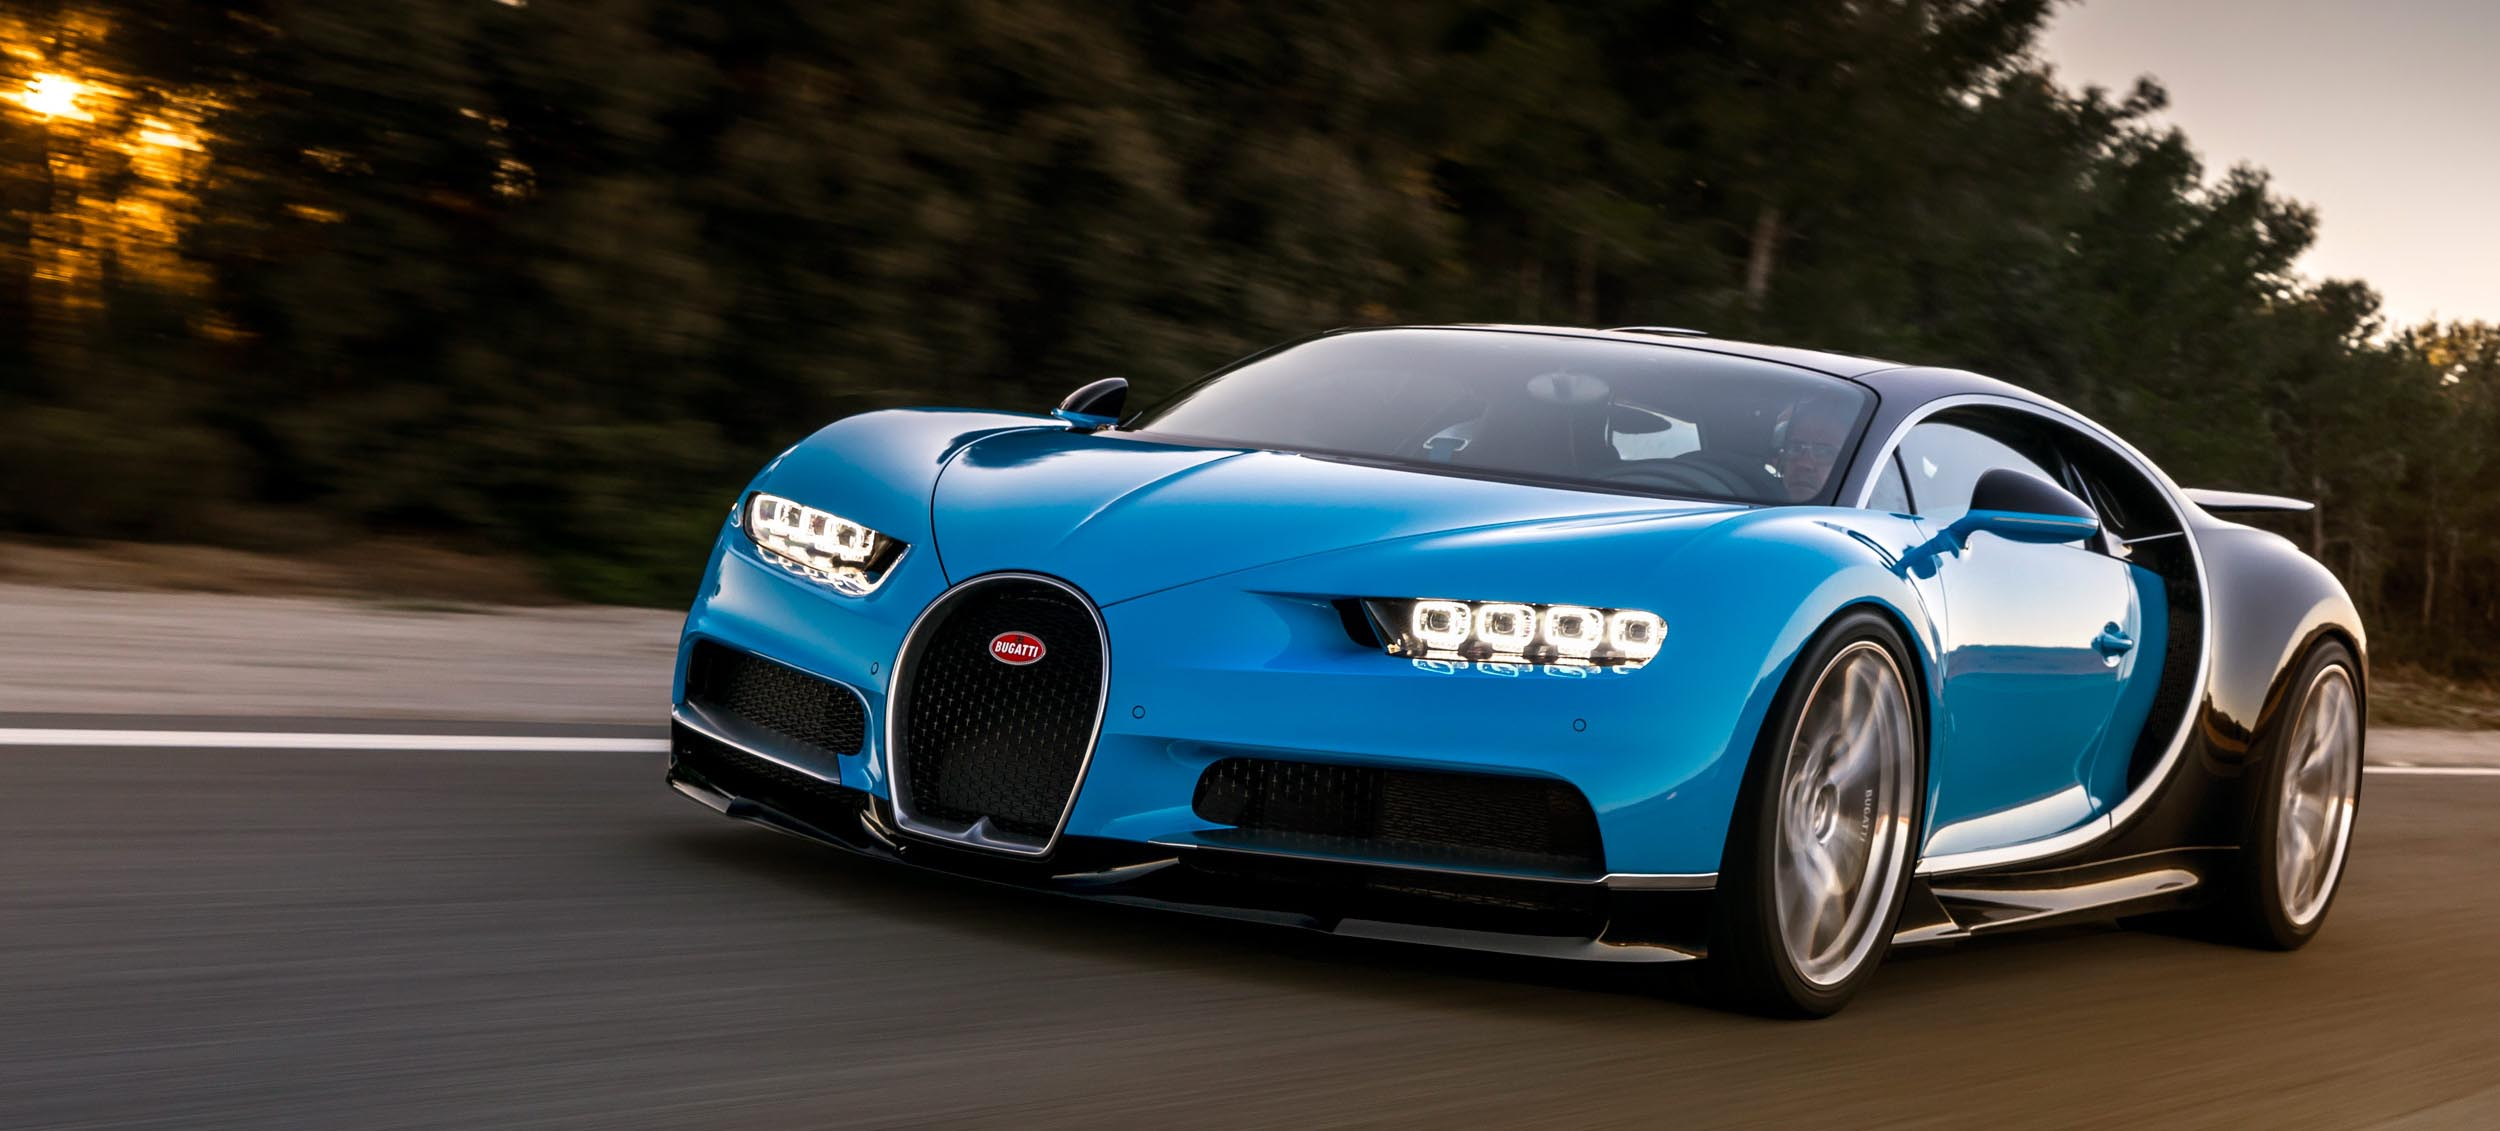 10 Things You Must Know About The New Bugatti Chiron | Bugatti Chiron in motion - Front view